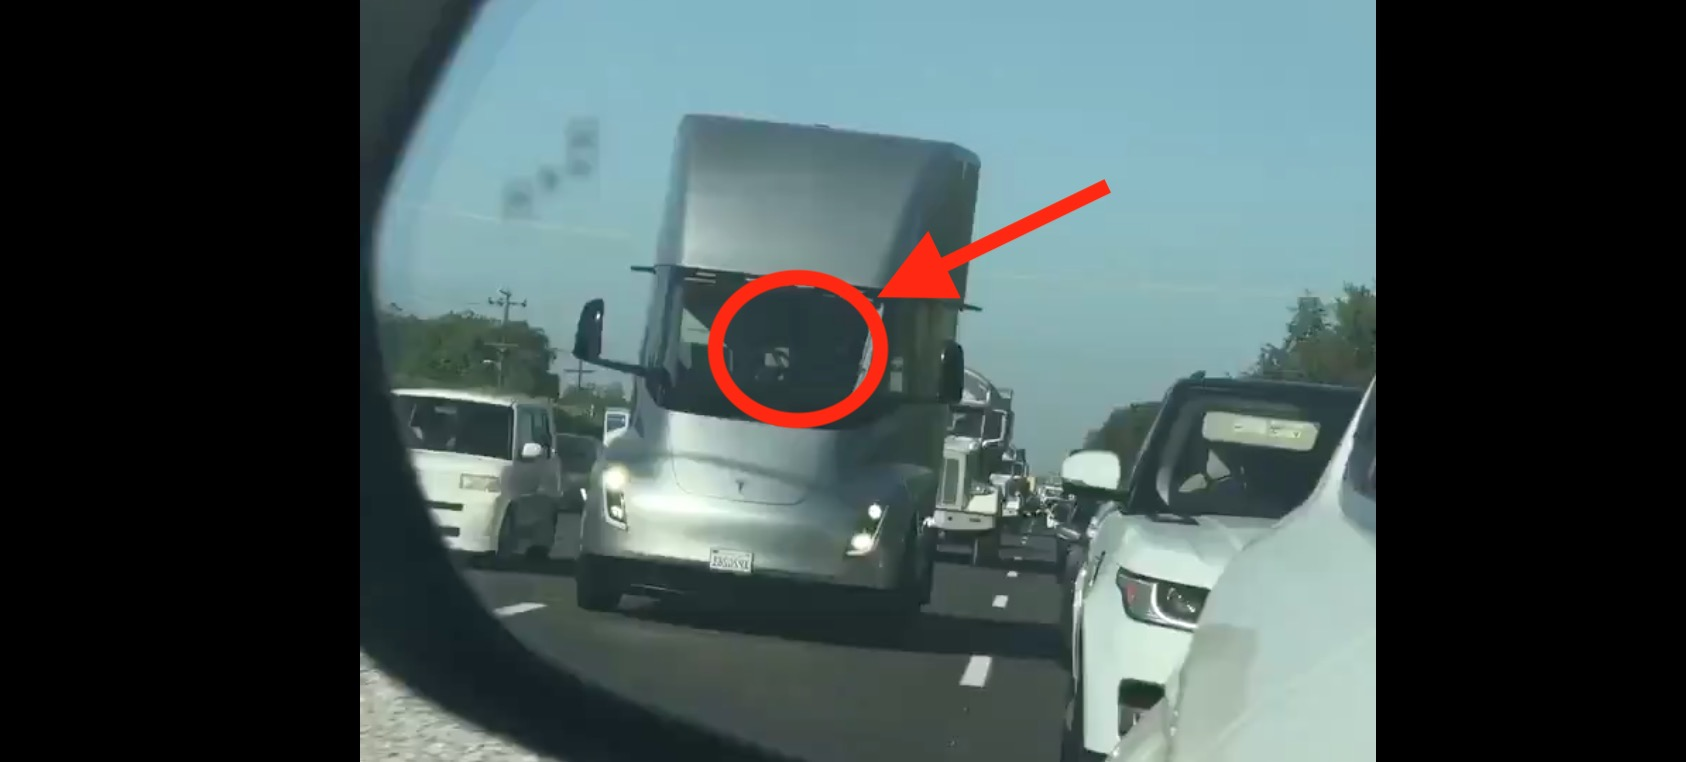 Tesla Semi prototype spotted on highway, maybe without a driver - Electrek